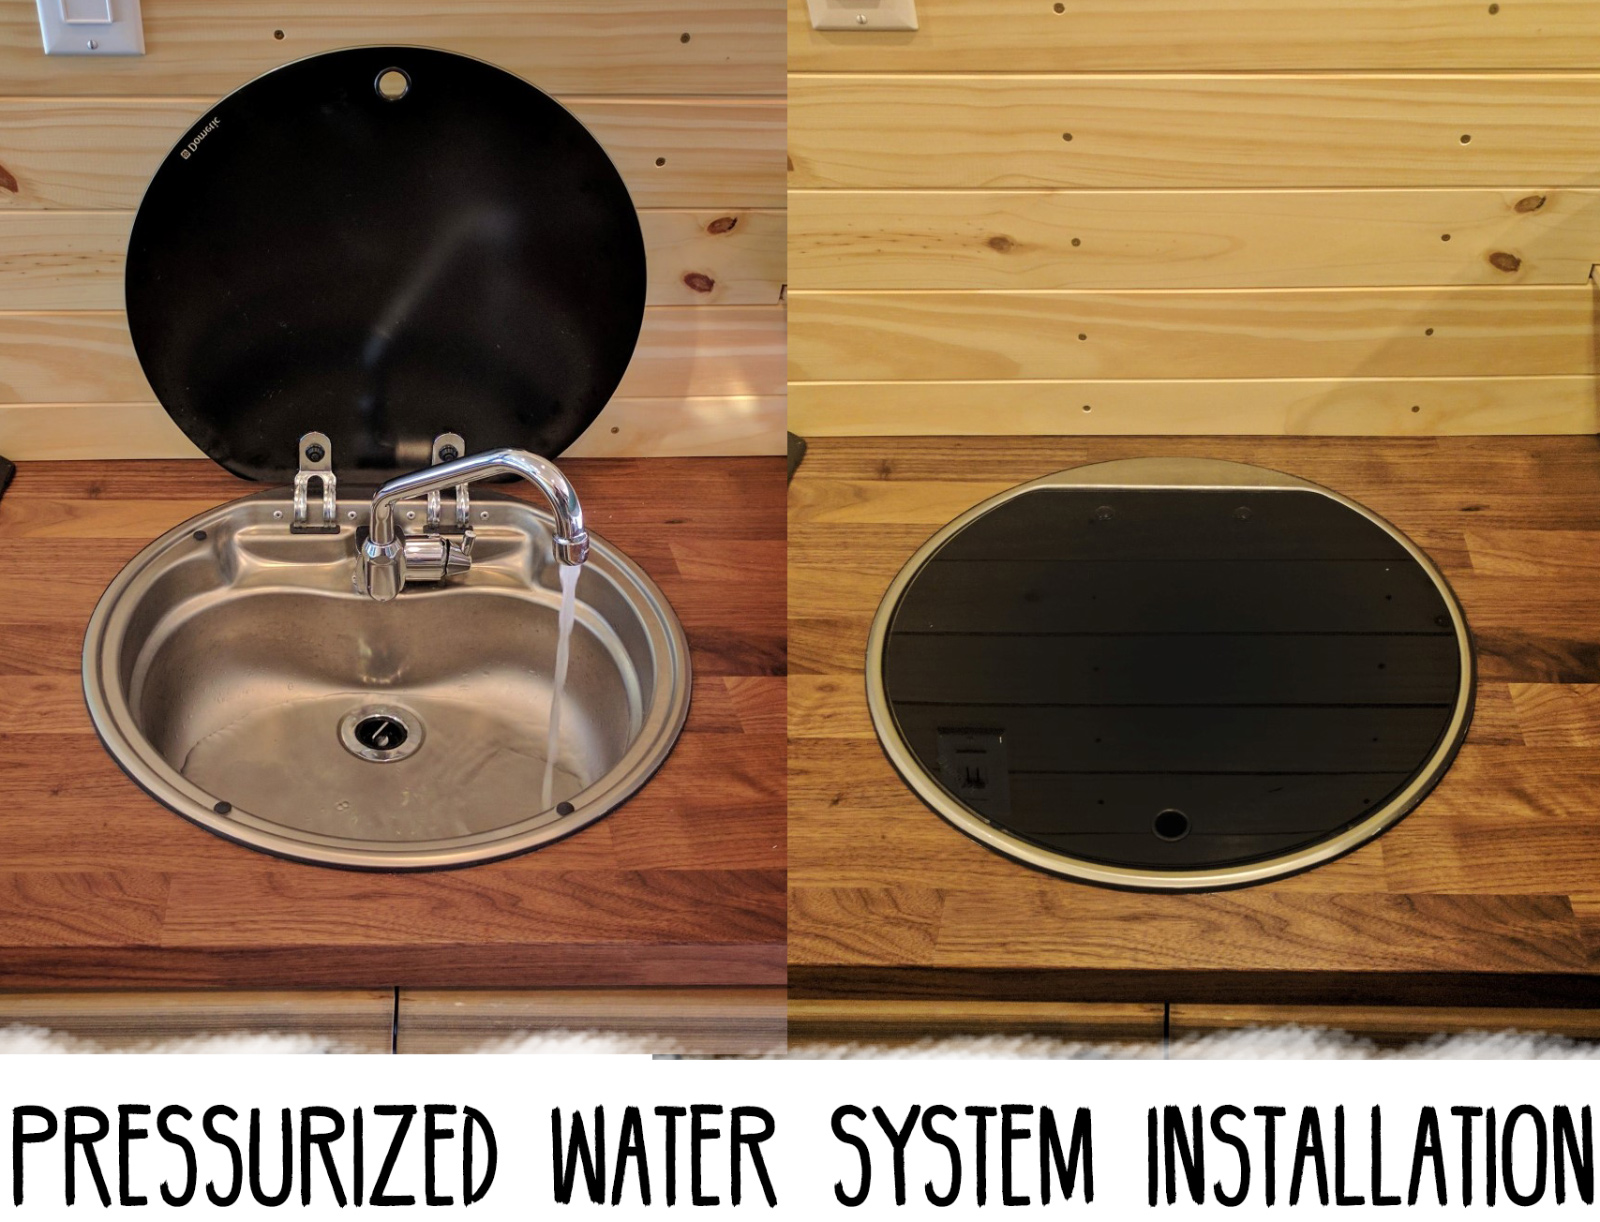 Water-System-Installation-Heading